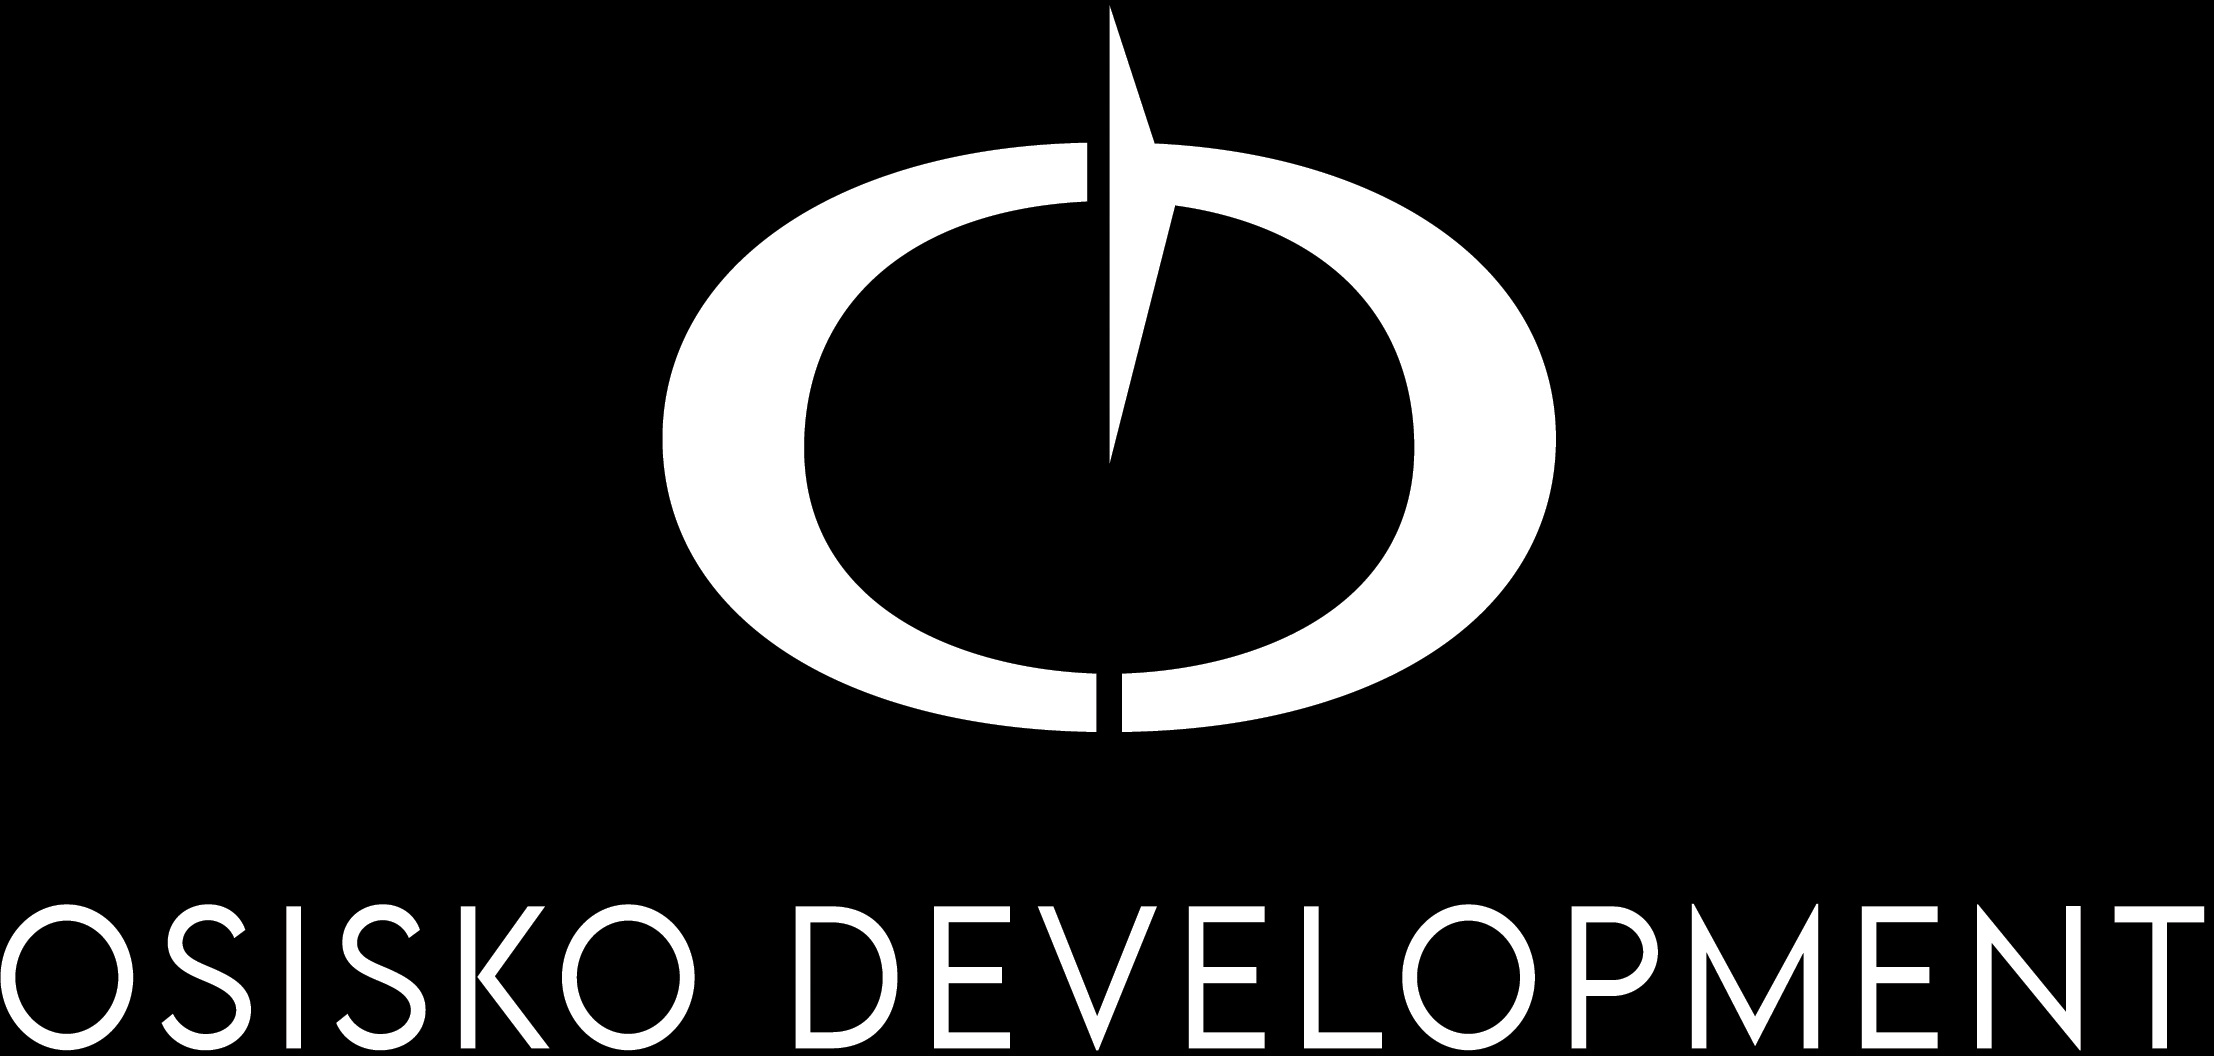 Osisko Development